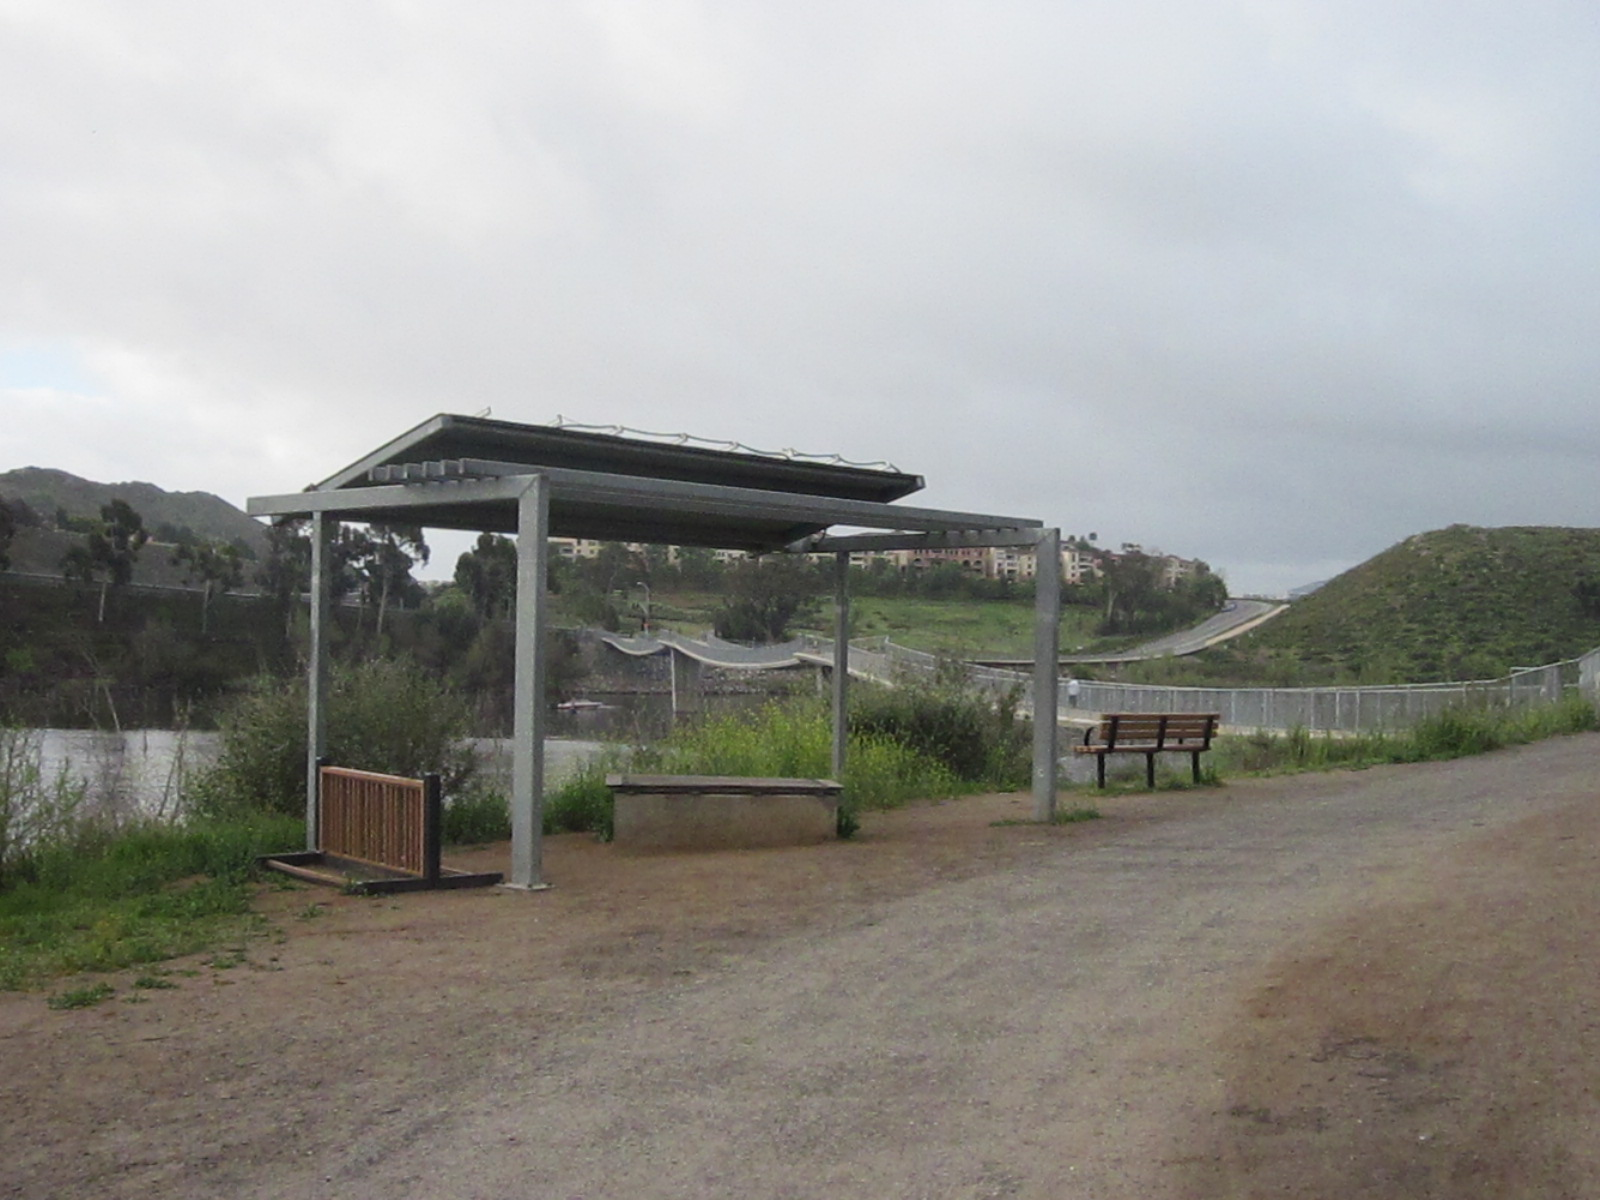 Shelter at Lake Hodges